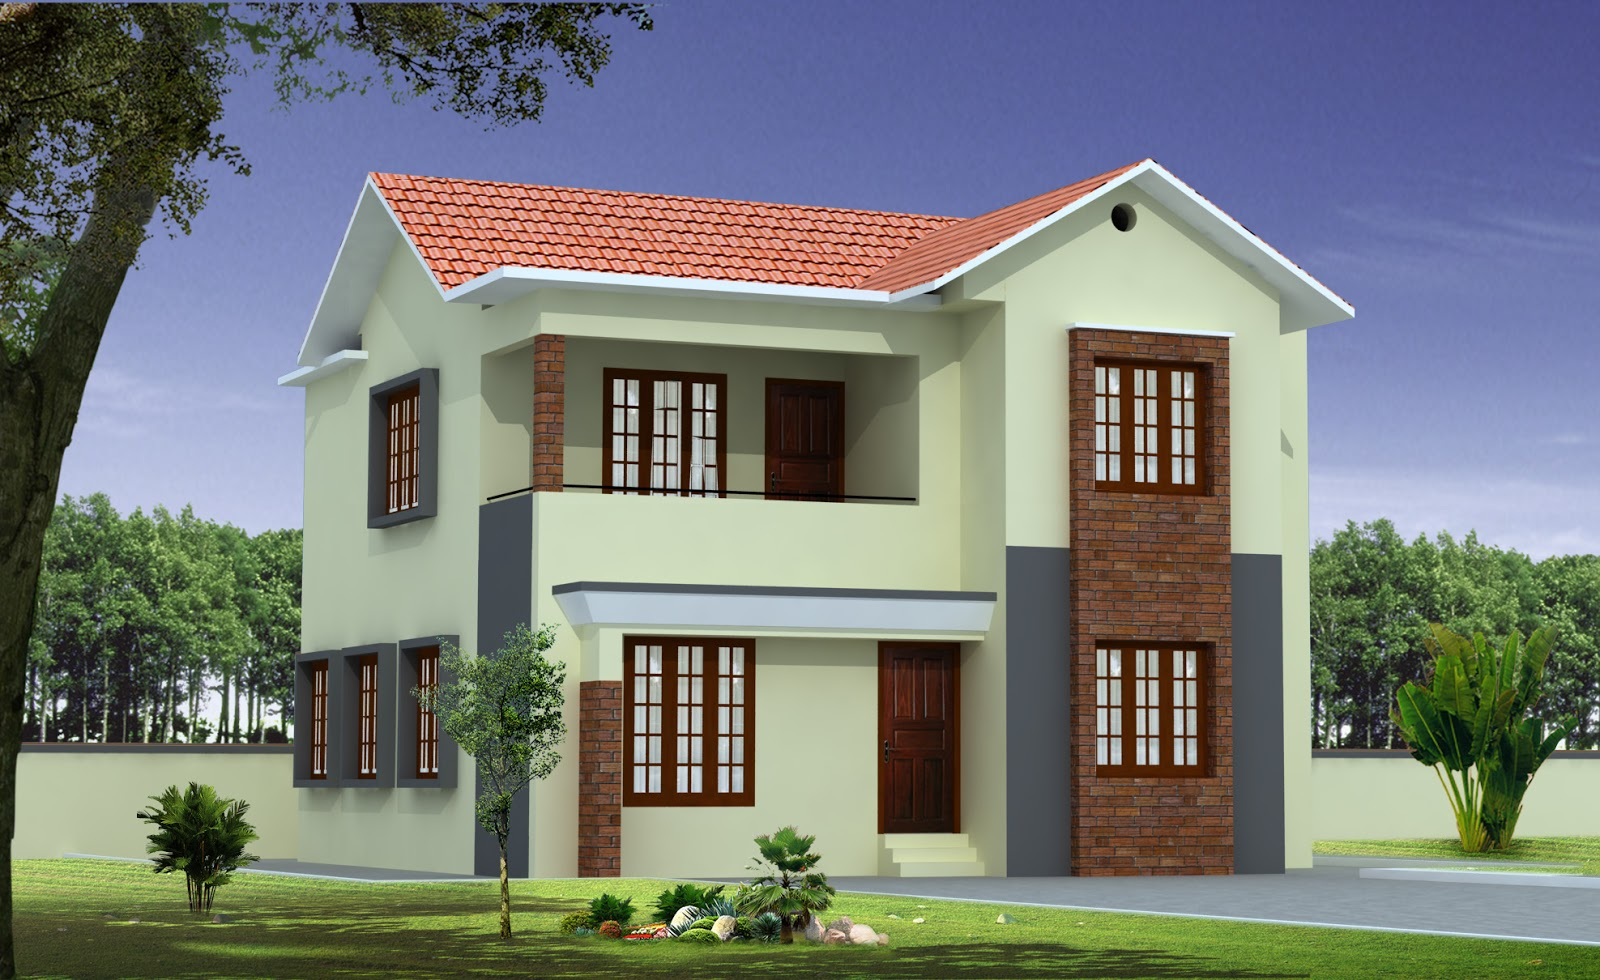 Home Design Images Of Build A Building Latest Home Designs